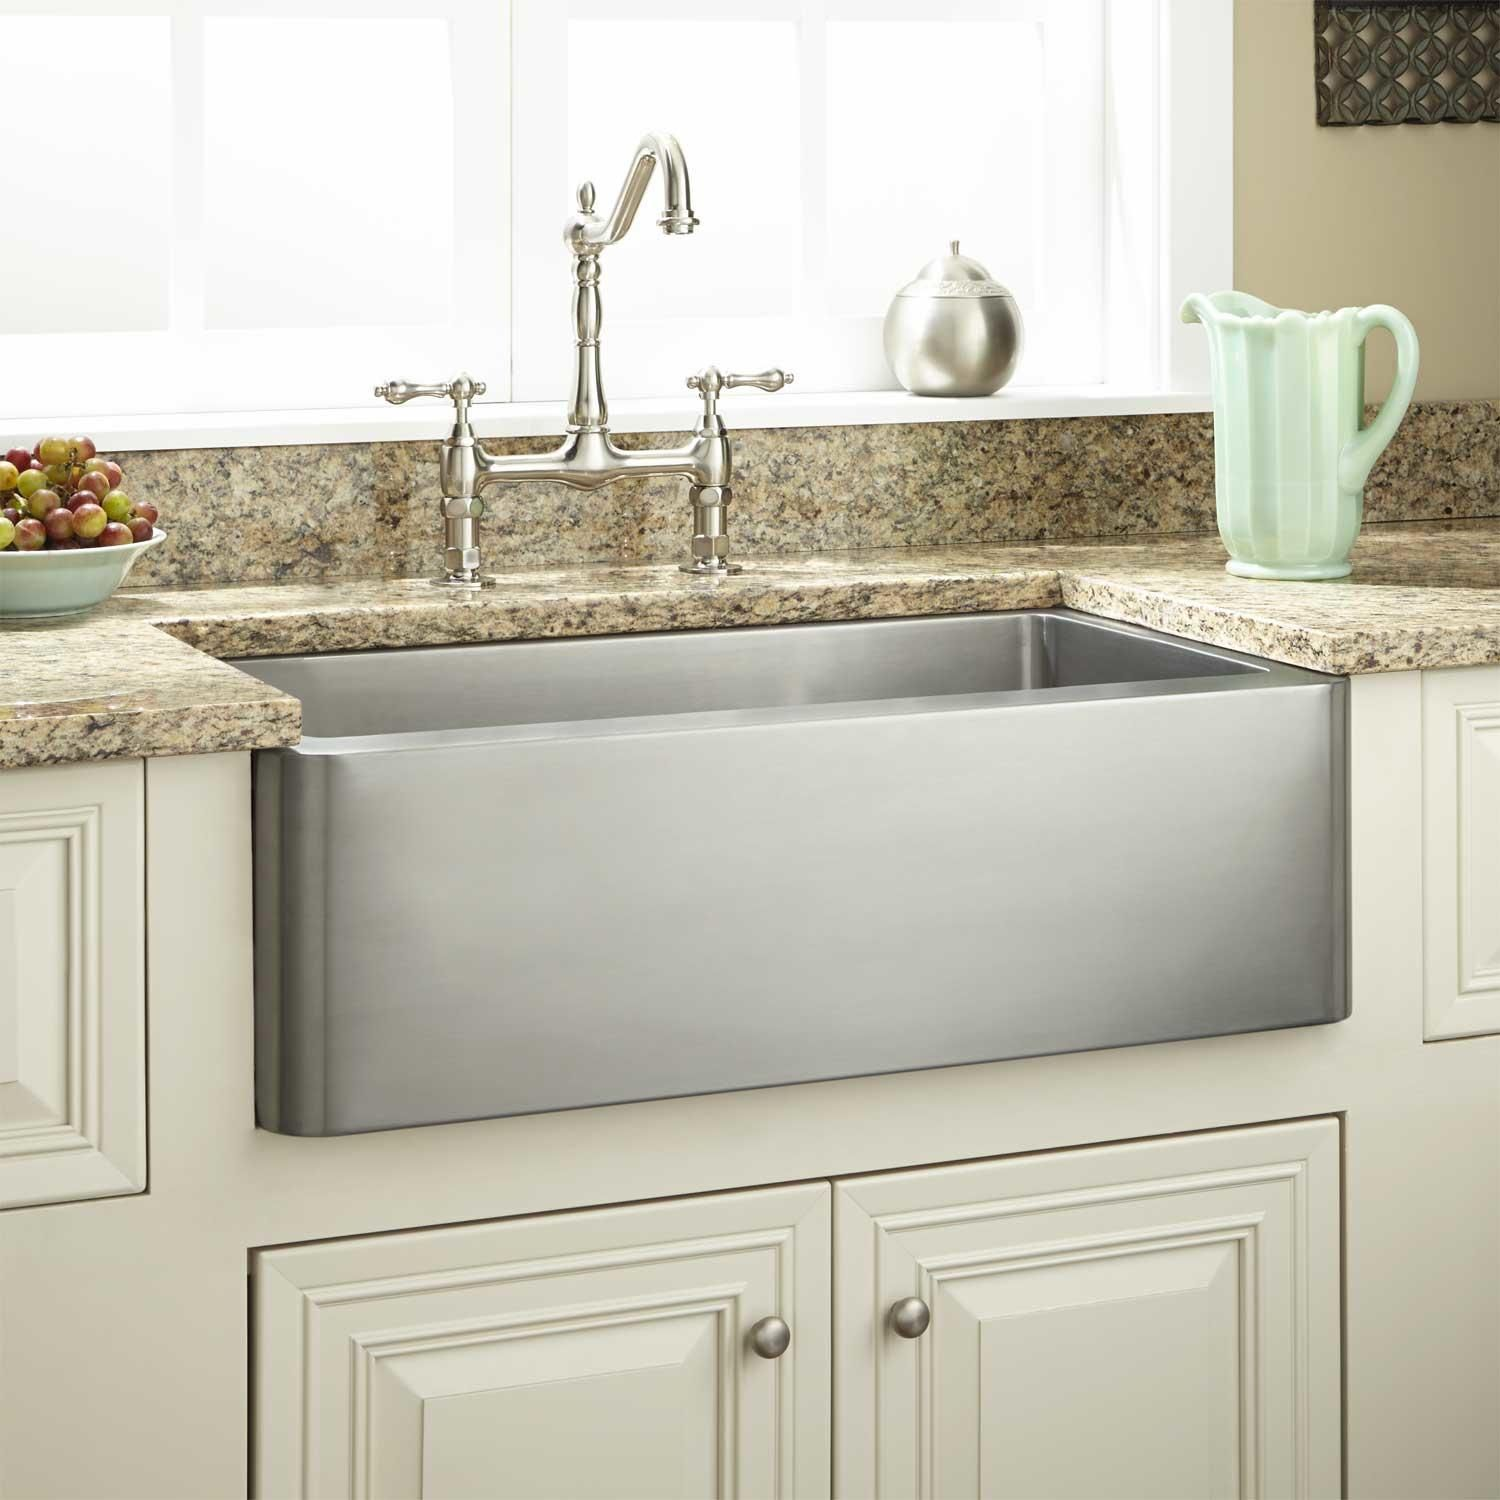 24 Fournier Stainless Steel Farmhouse Sink In Curved Apron Signature Hardware Stainless Steel Farmhouse Sink Farmhouse Sink Kitchen Kitchen Fixtures